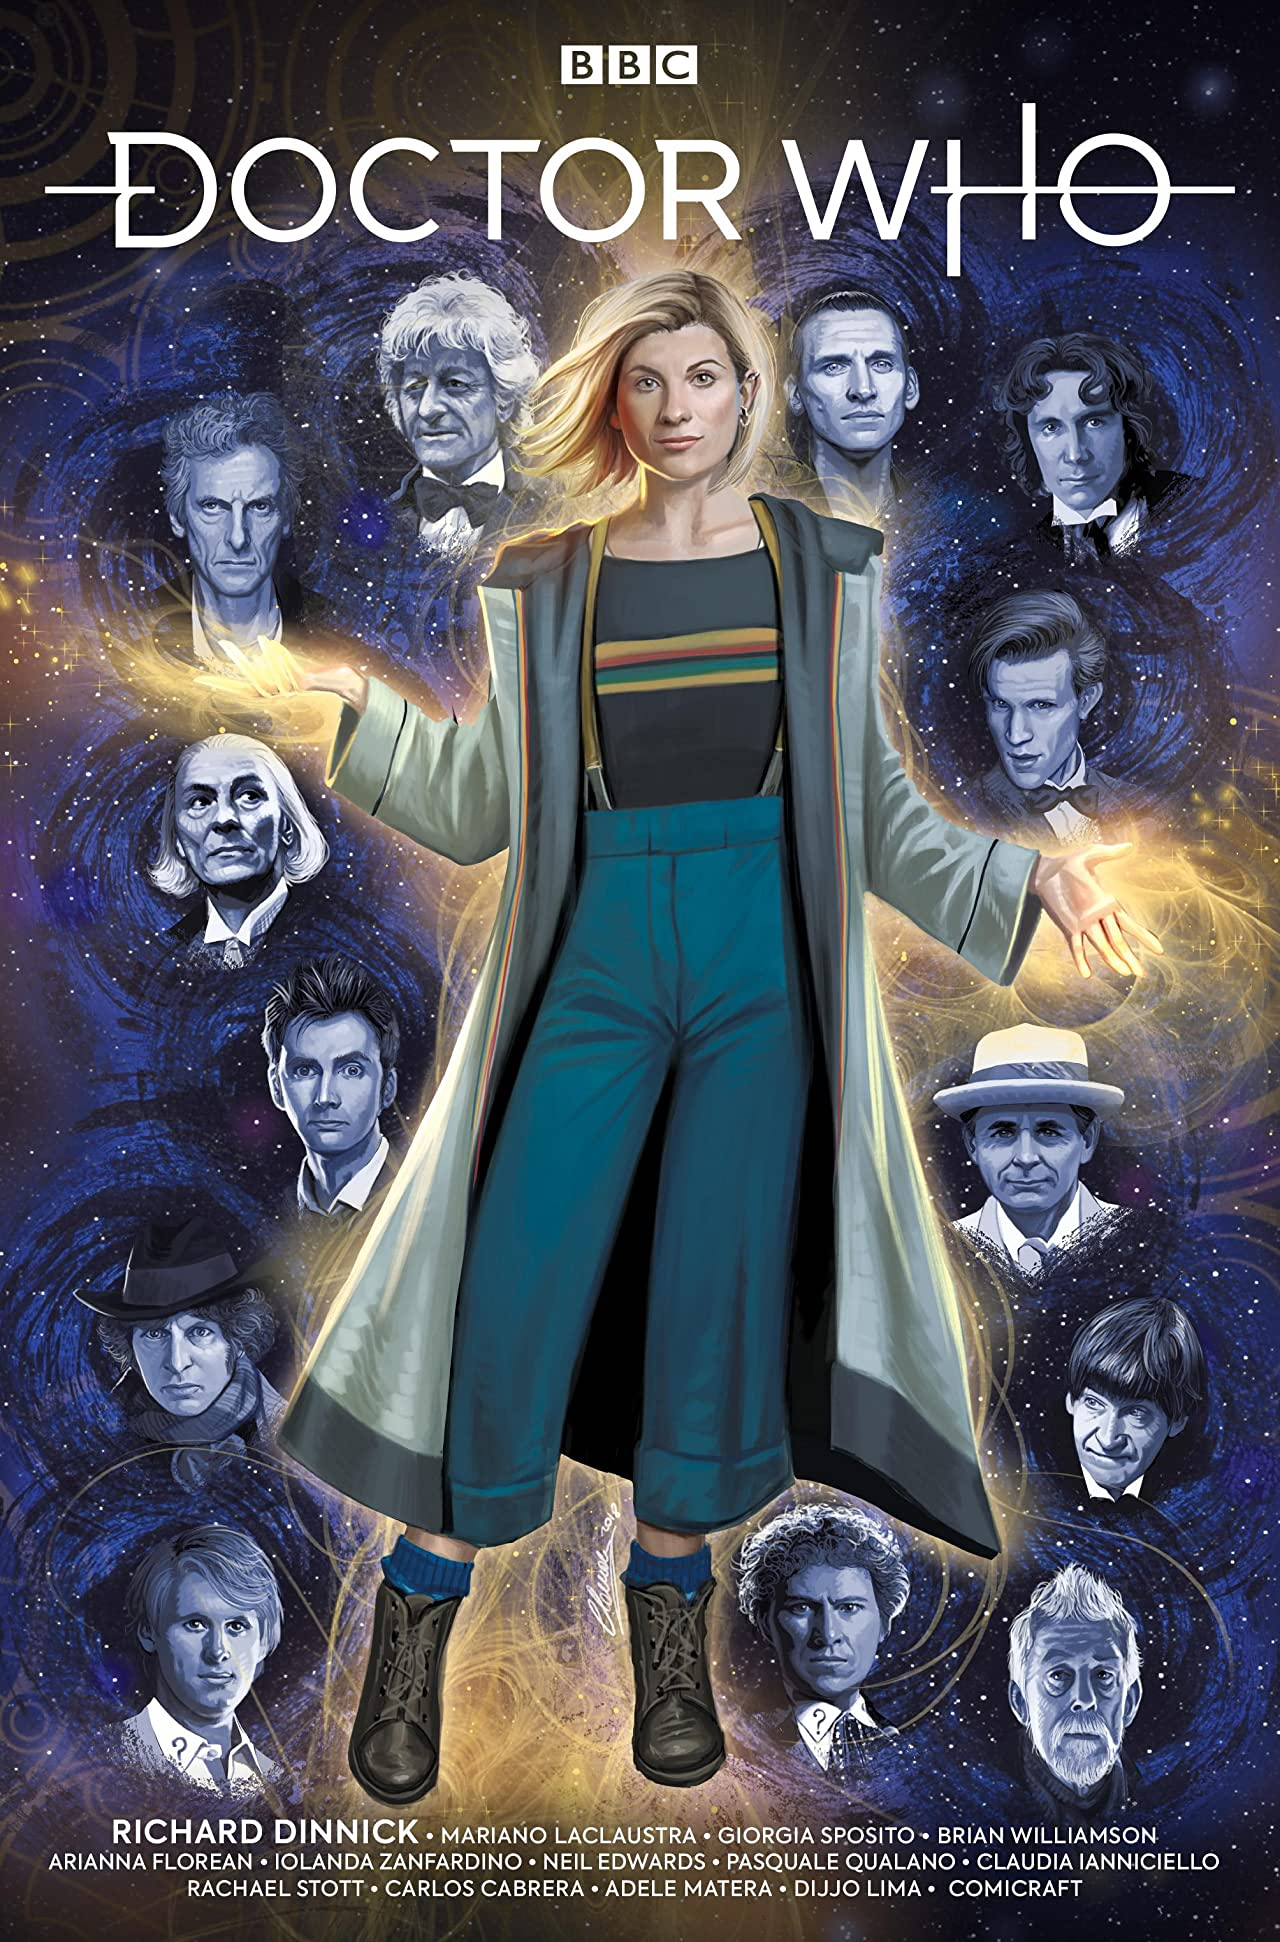 Doctor Who: The Thirteenth Doctor No.0: The Many Lives of Doctor Who